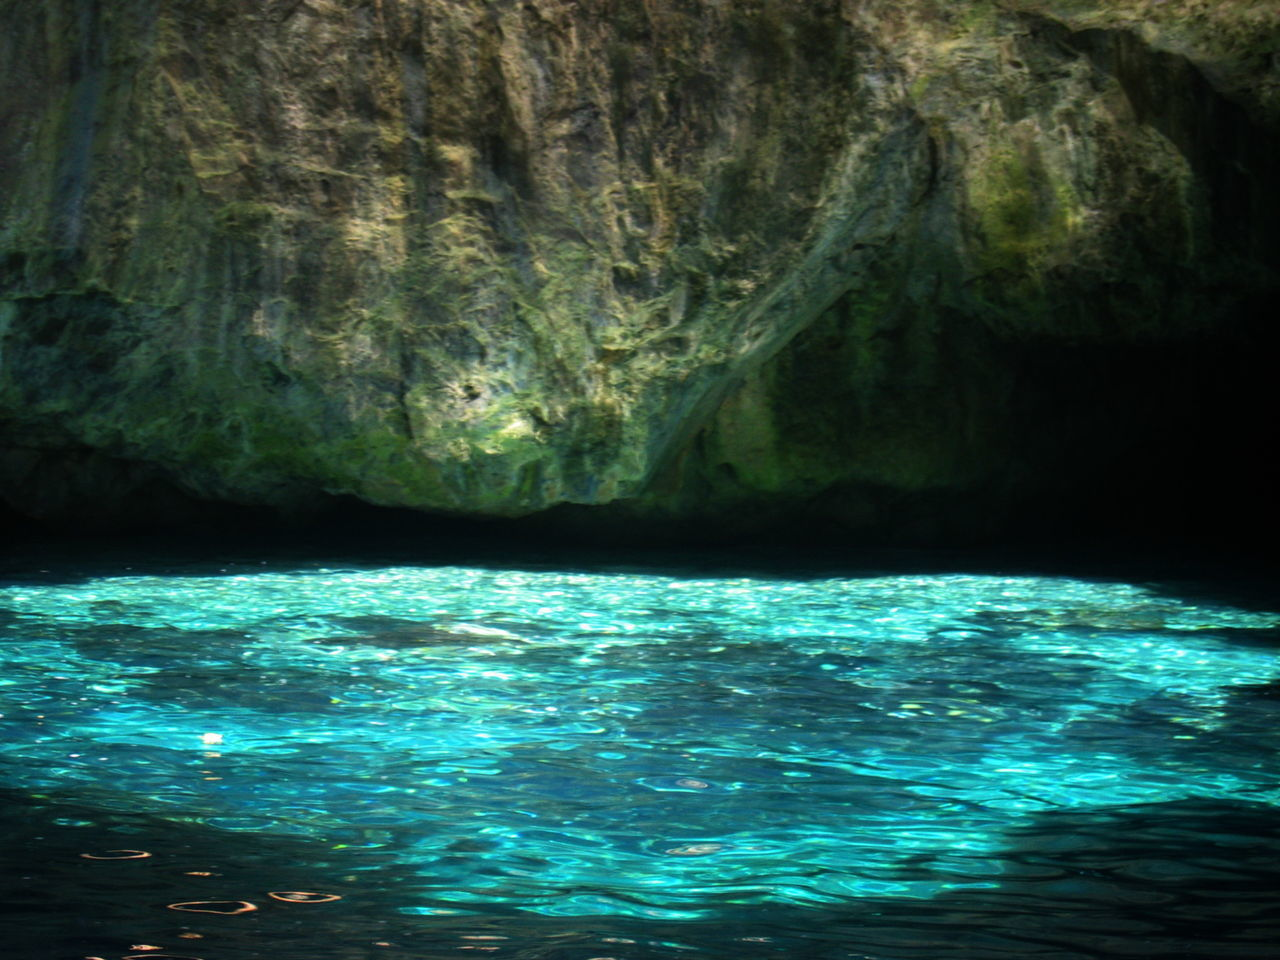 Beauty In Nature Marettimo Island Marine Cave Reflection Rock Rock Formation Sea Sicily, Italy Sunlight And Shadow Water